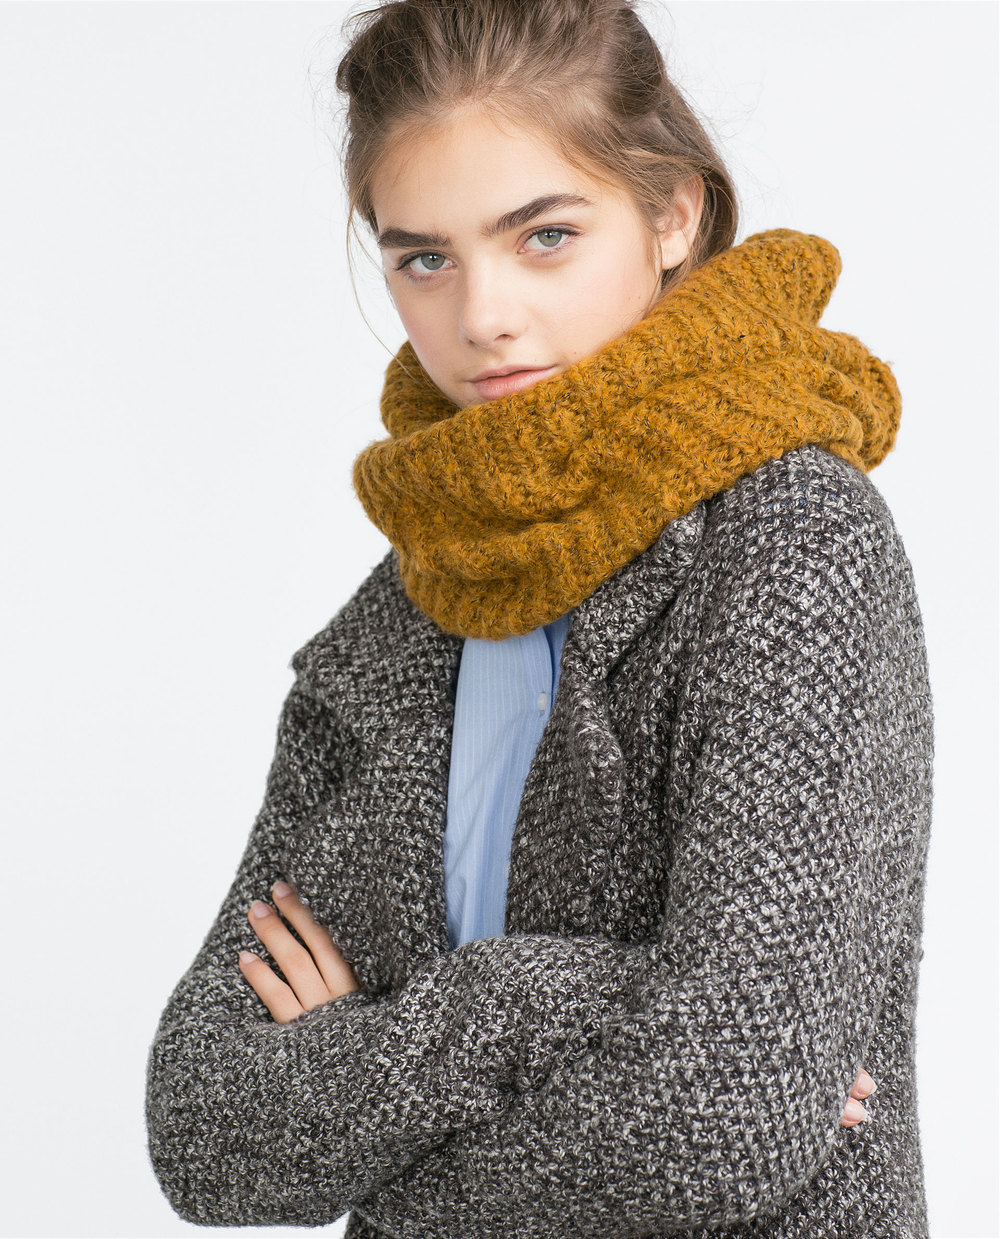 Zara Basic Knit Snood, $12.90